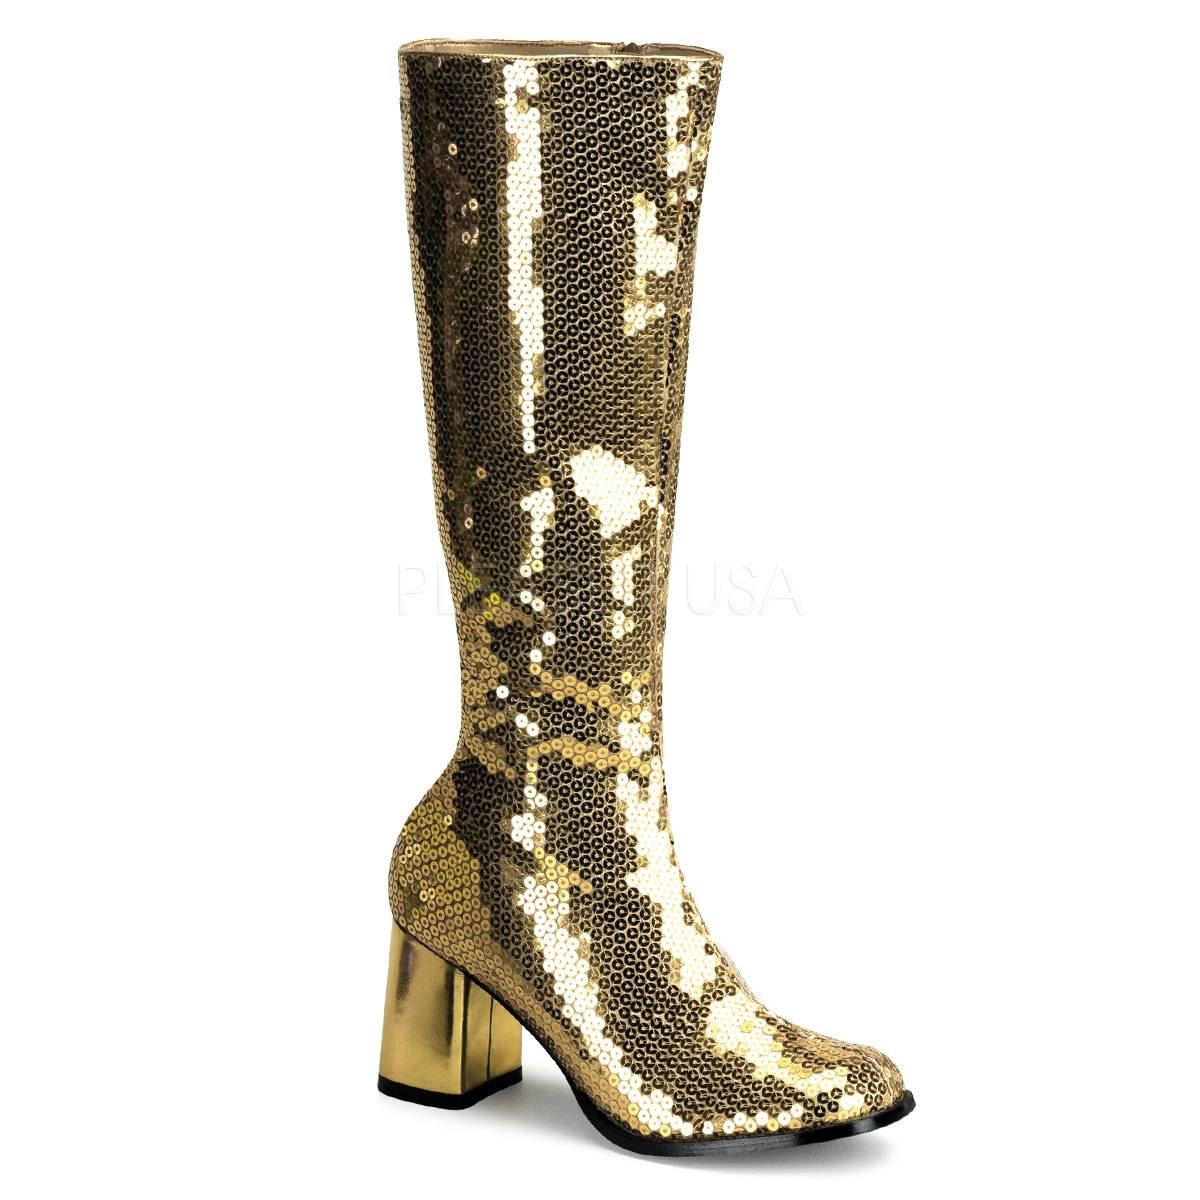 6558ca44895233 SPECTACUL 300SQ ° Damen Stiefel ° Gold Pailetten ° Bordello ...